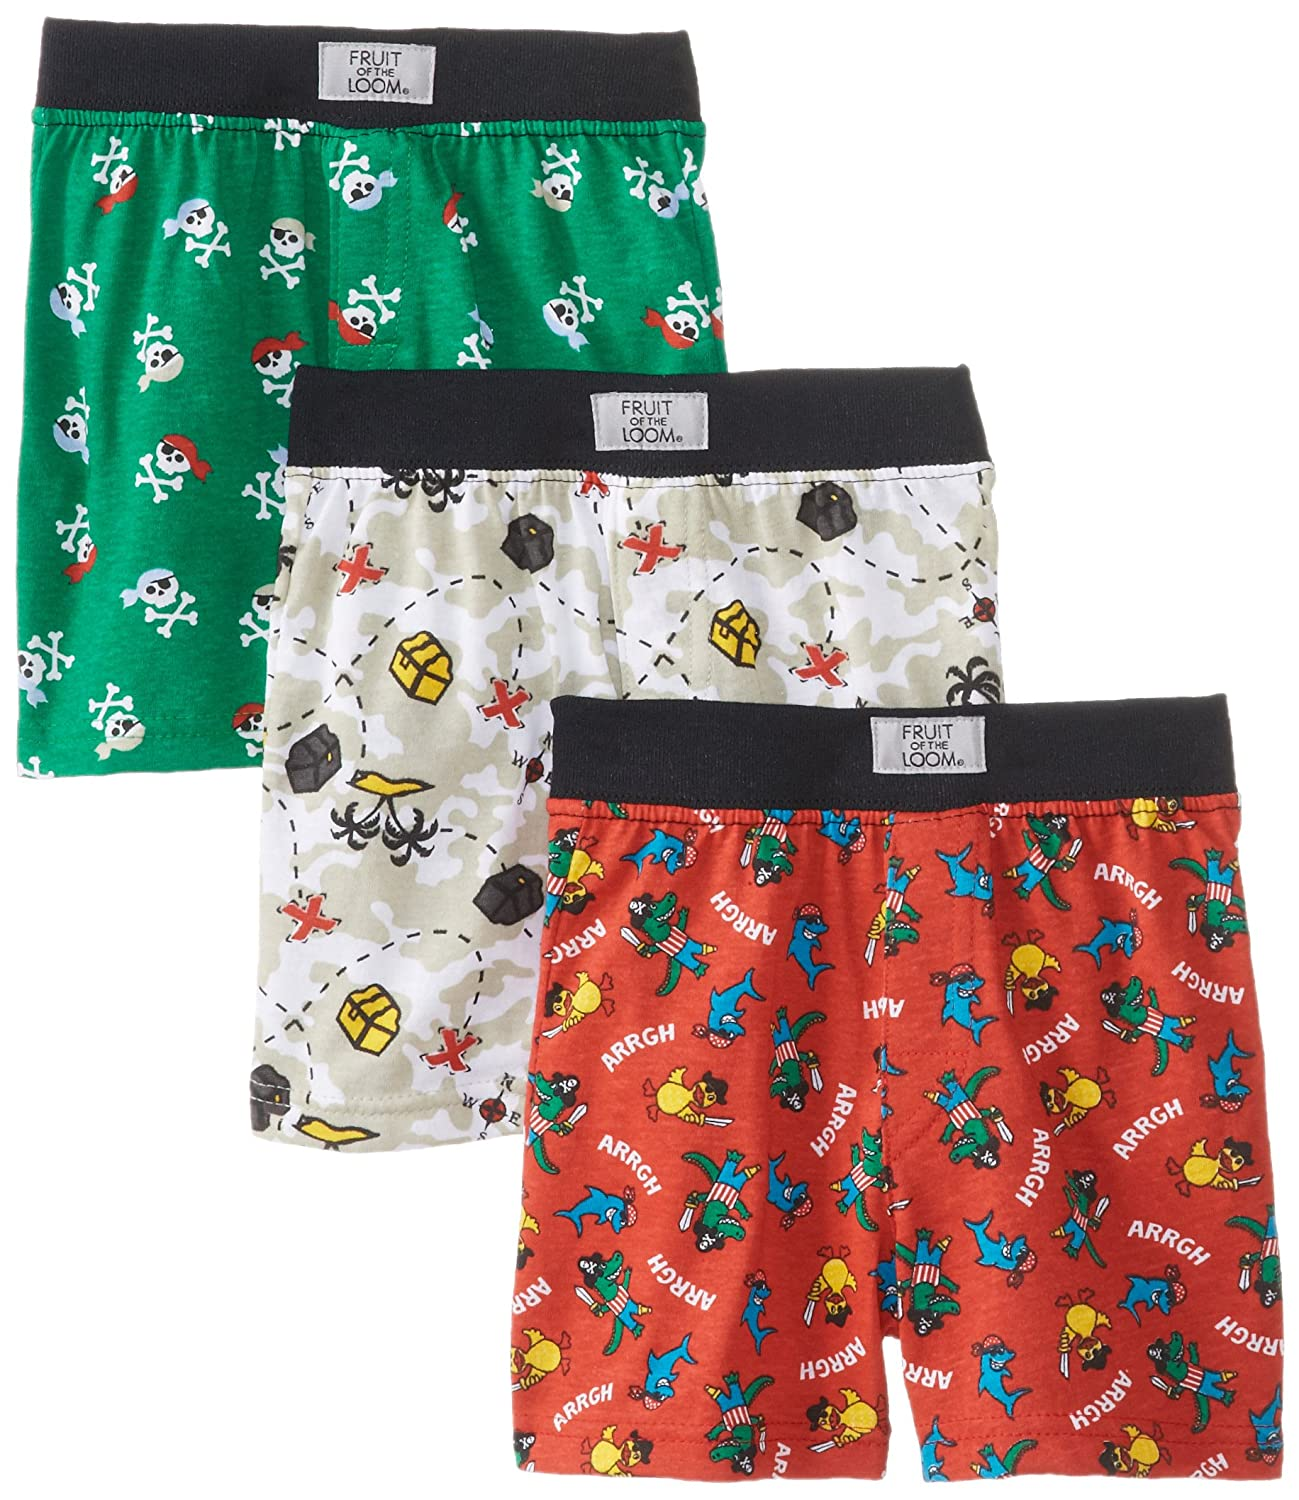 Fruit of the Loom Little Boys  Covered Waistband Knit Boxer Underwear Pack of 3 Pack of 3 Assorted Prints 4T Fruit of the Loom Boys 2-7 FTL-3PB540T